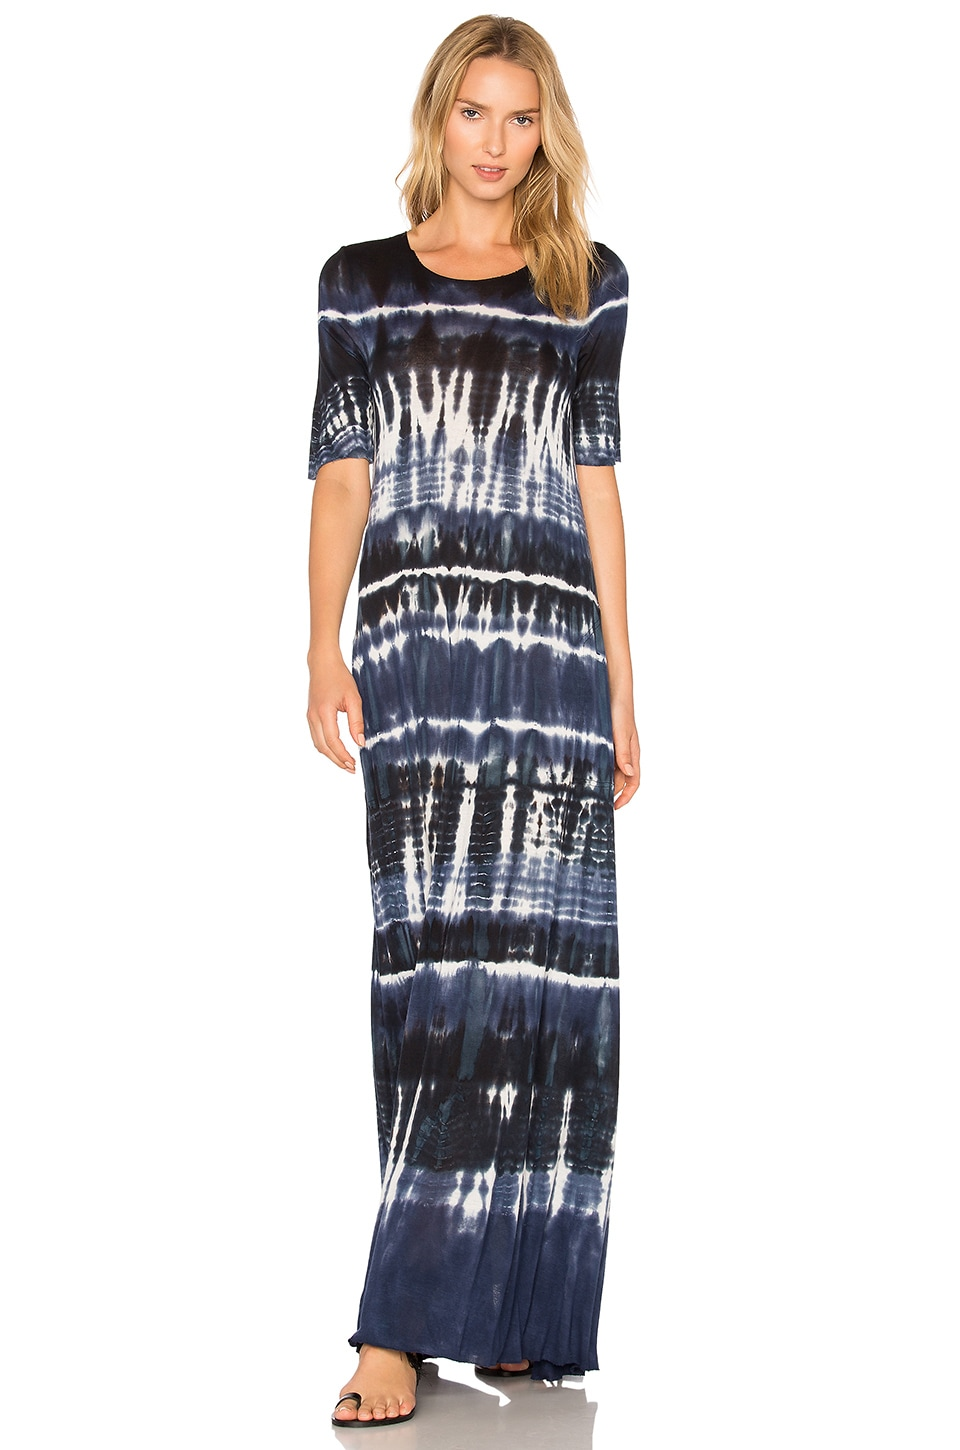 Raquel Allegra Drama Maxi Dress in Navy Tie Dye